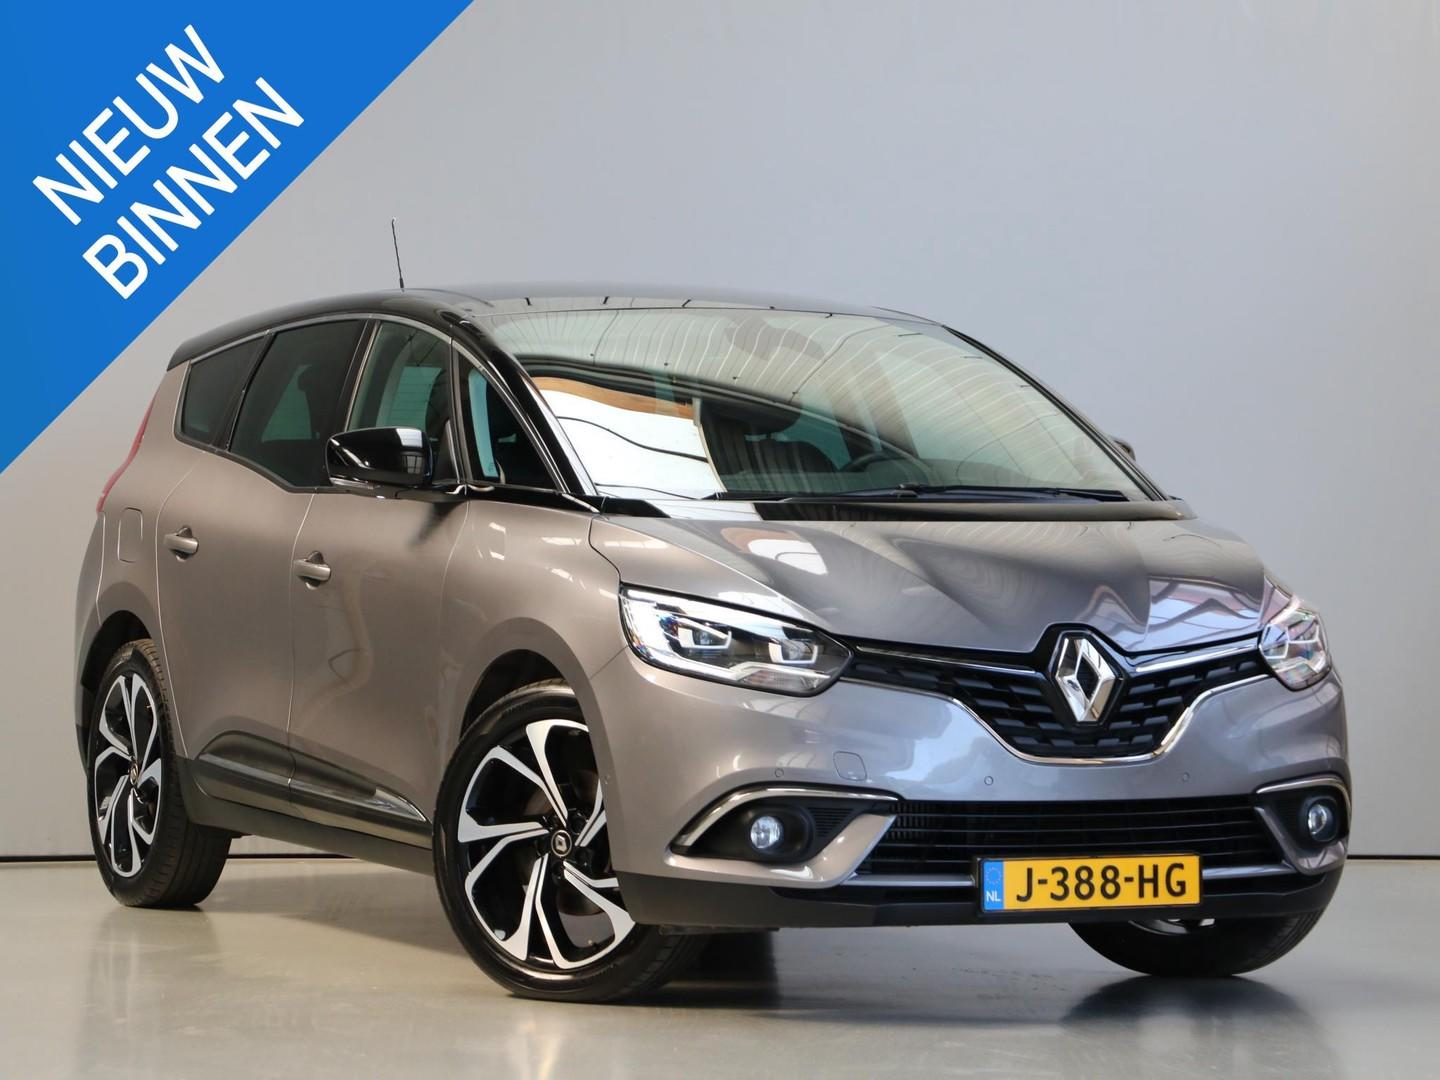 Renault Grand scénic Tce 140pk edc/aut.7 intens 7-persoons